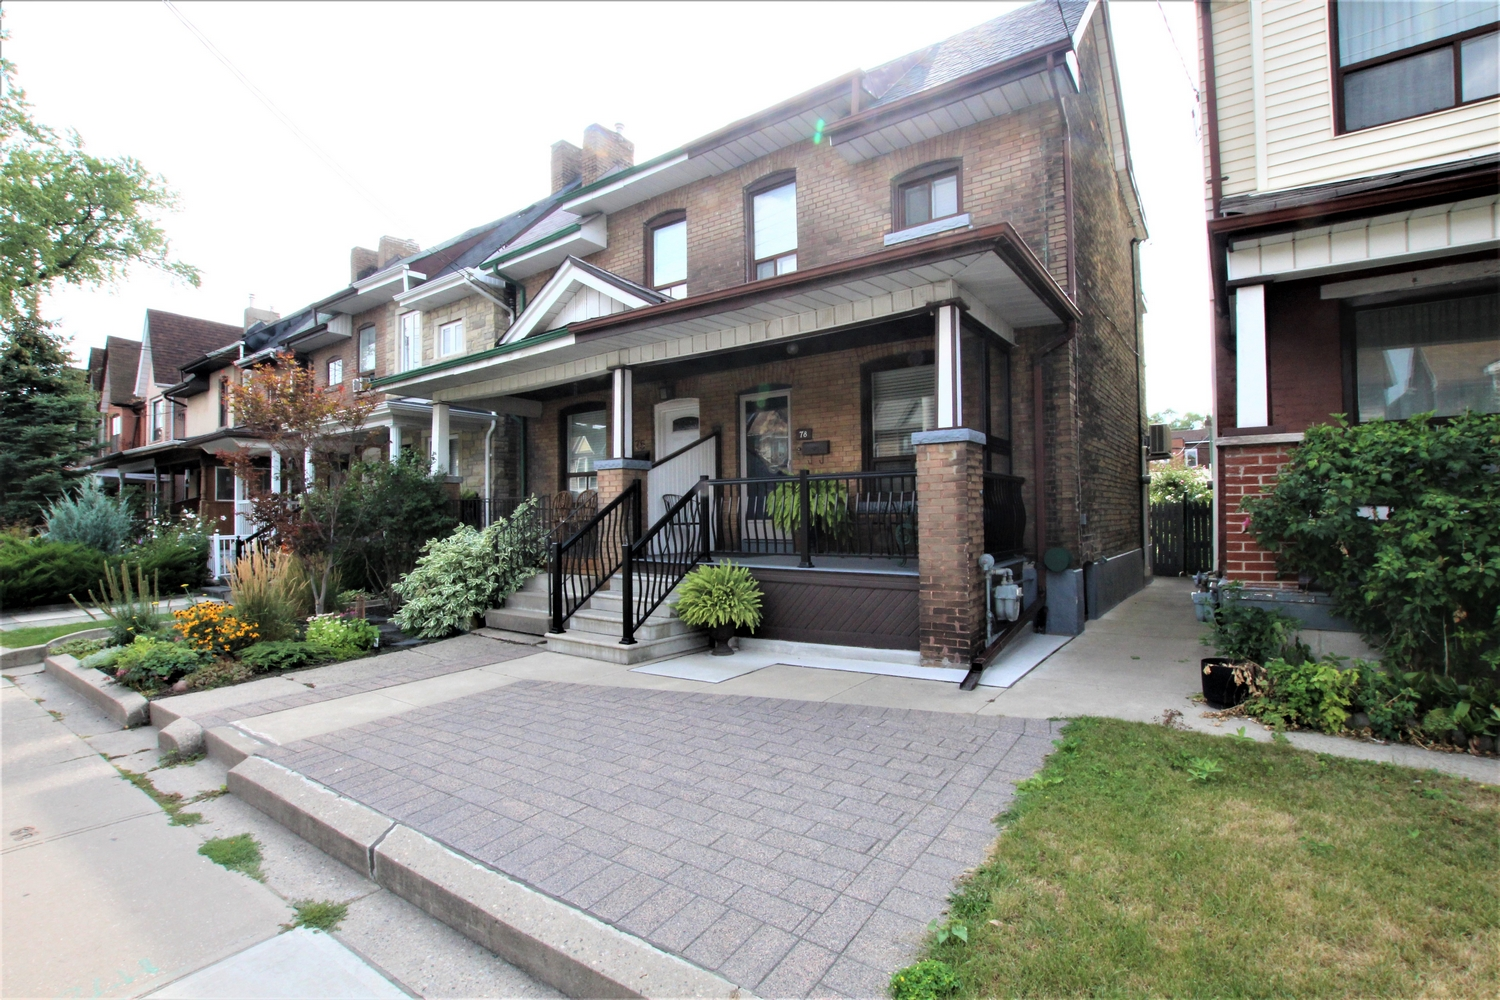 3 Bedroom Family Home for Rent with finished basement & Garage